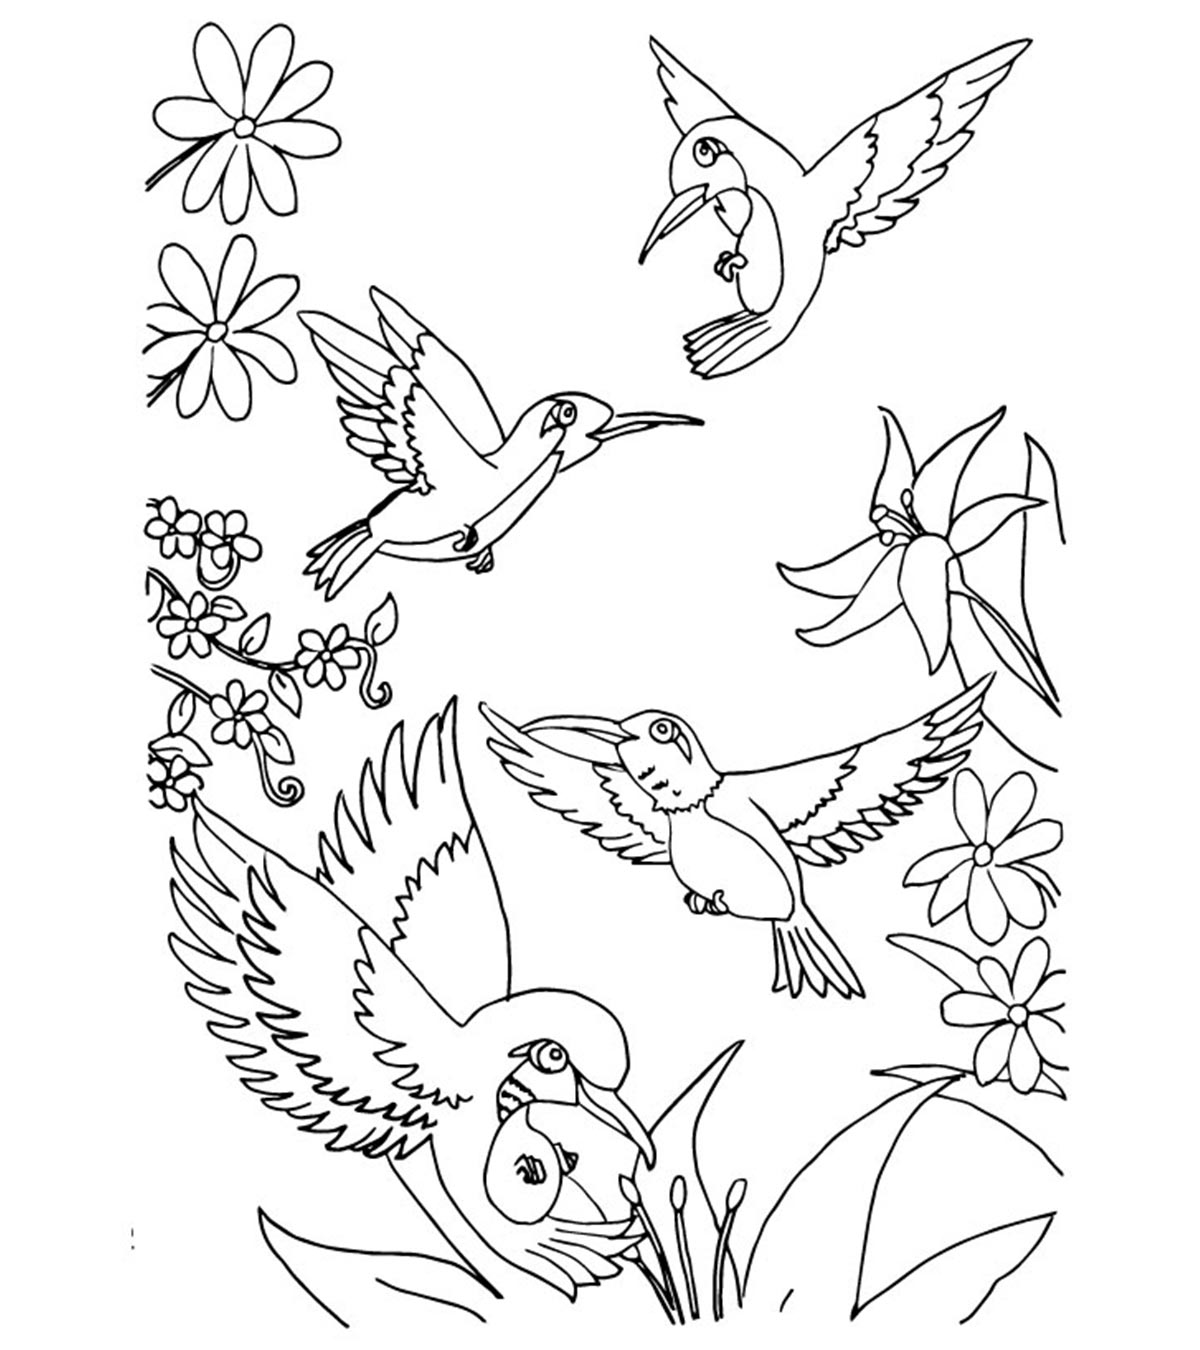 tropical bird coloring pages tropical bird coloring pages to print coloringguru bird coloring tropical pages